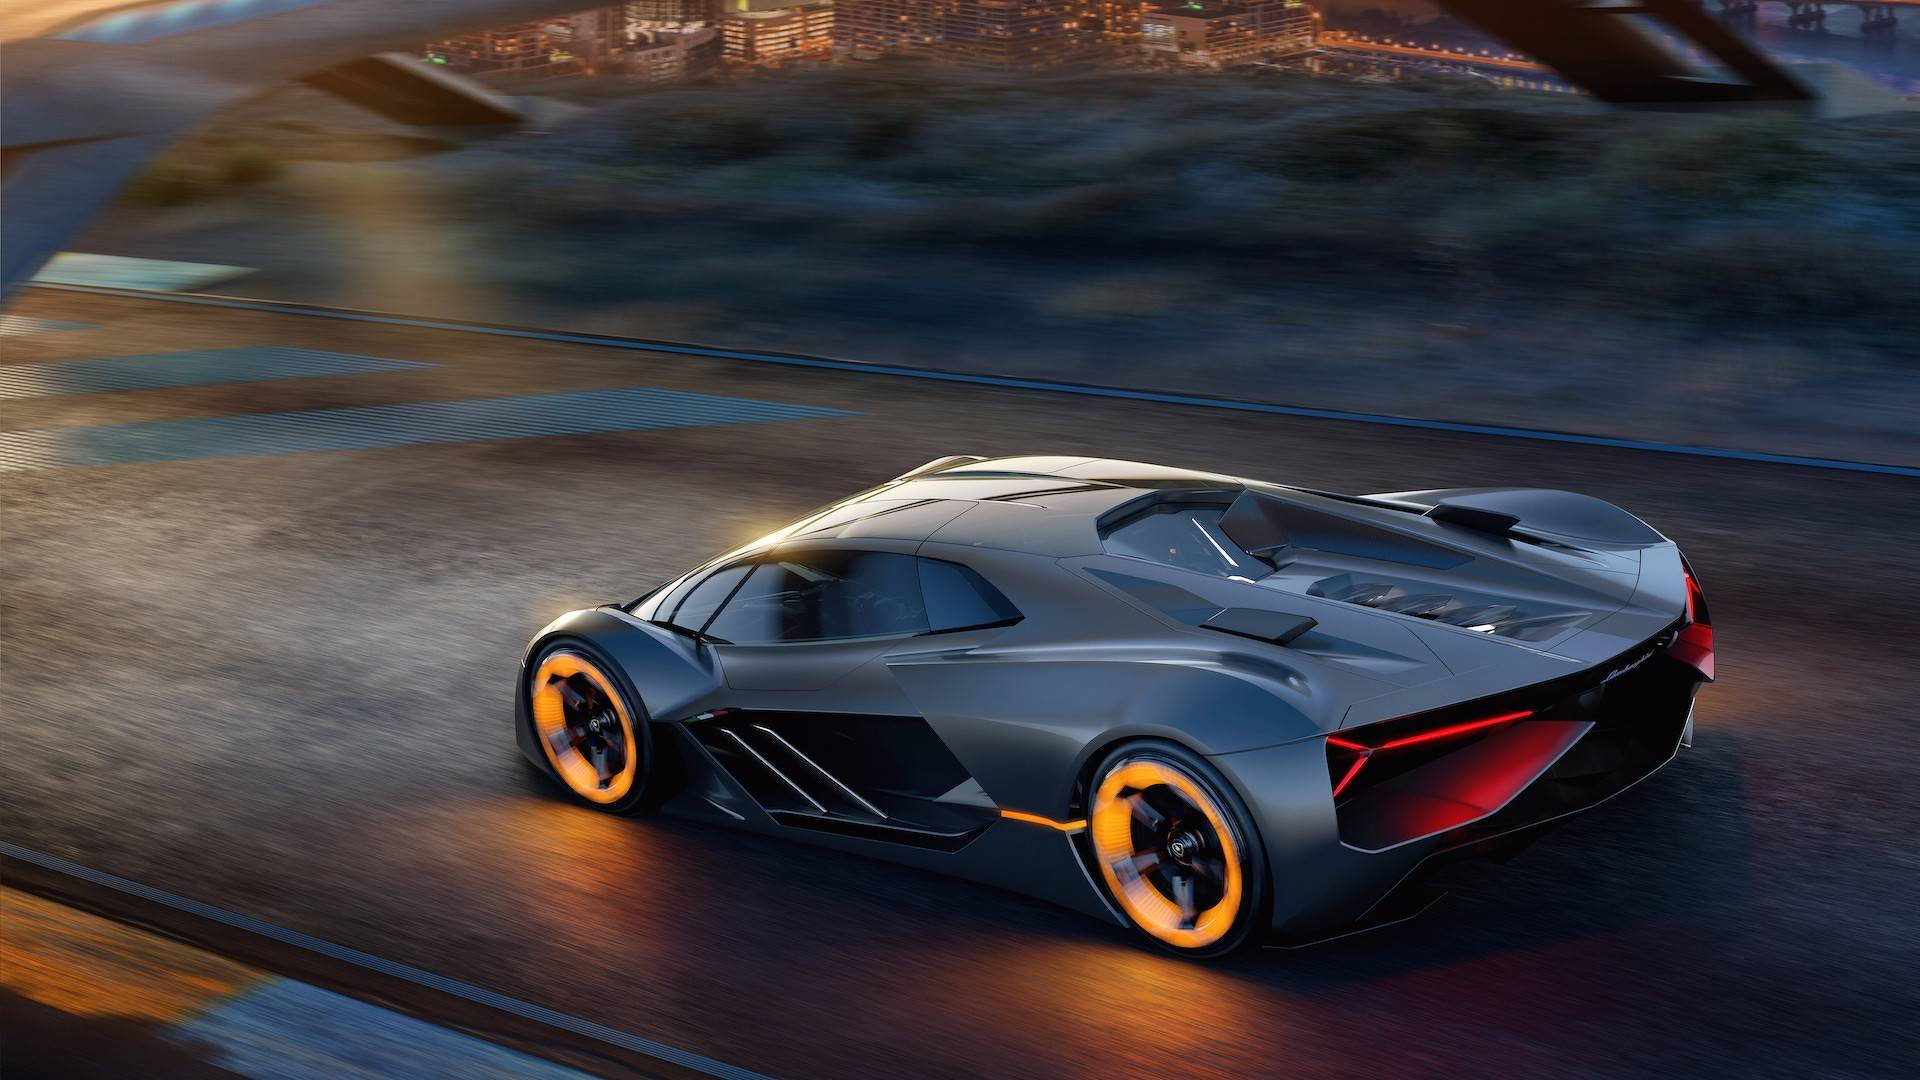 Lamborghini S Reportedly Building A 3m Hypercar With Hybrid V 12